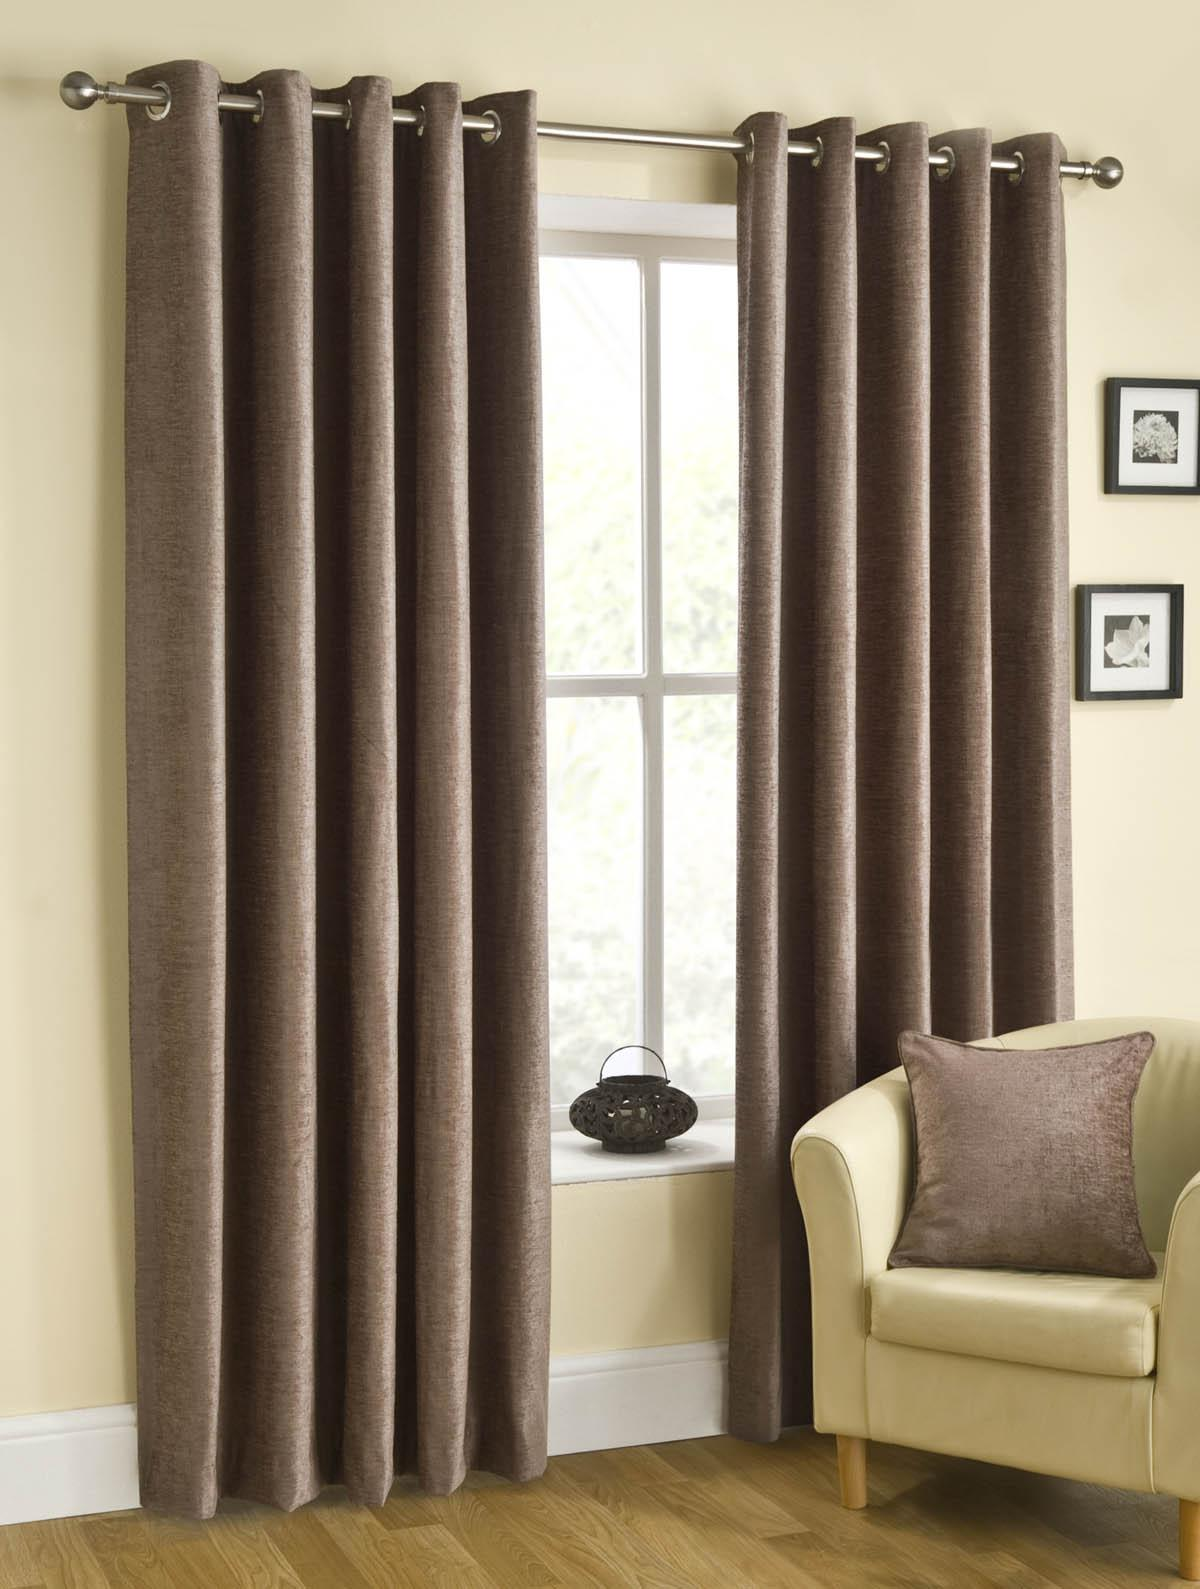 Stockists of Mink Puerto Ready Made Eyelet Curtains